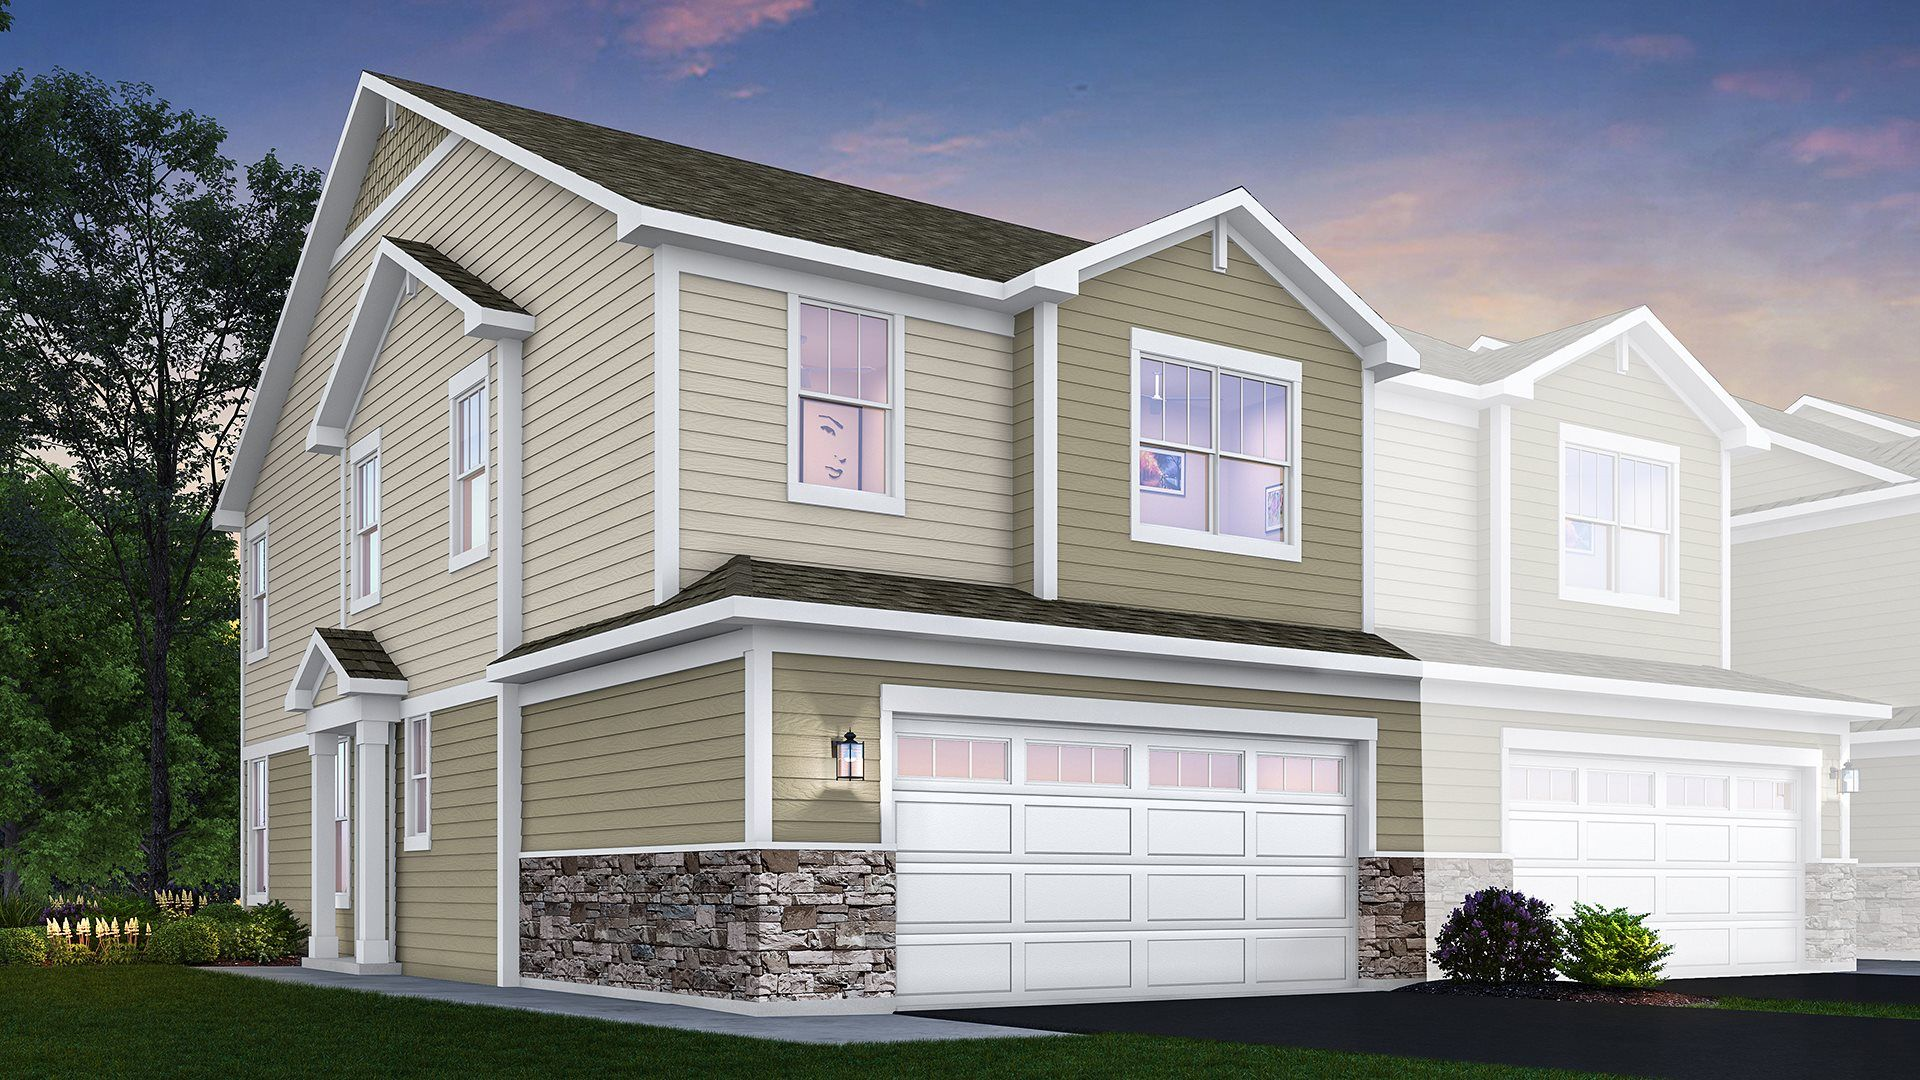 Darcy floorplan with traditional exterior